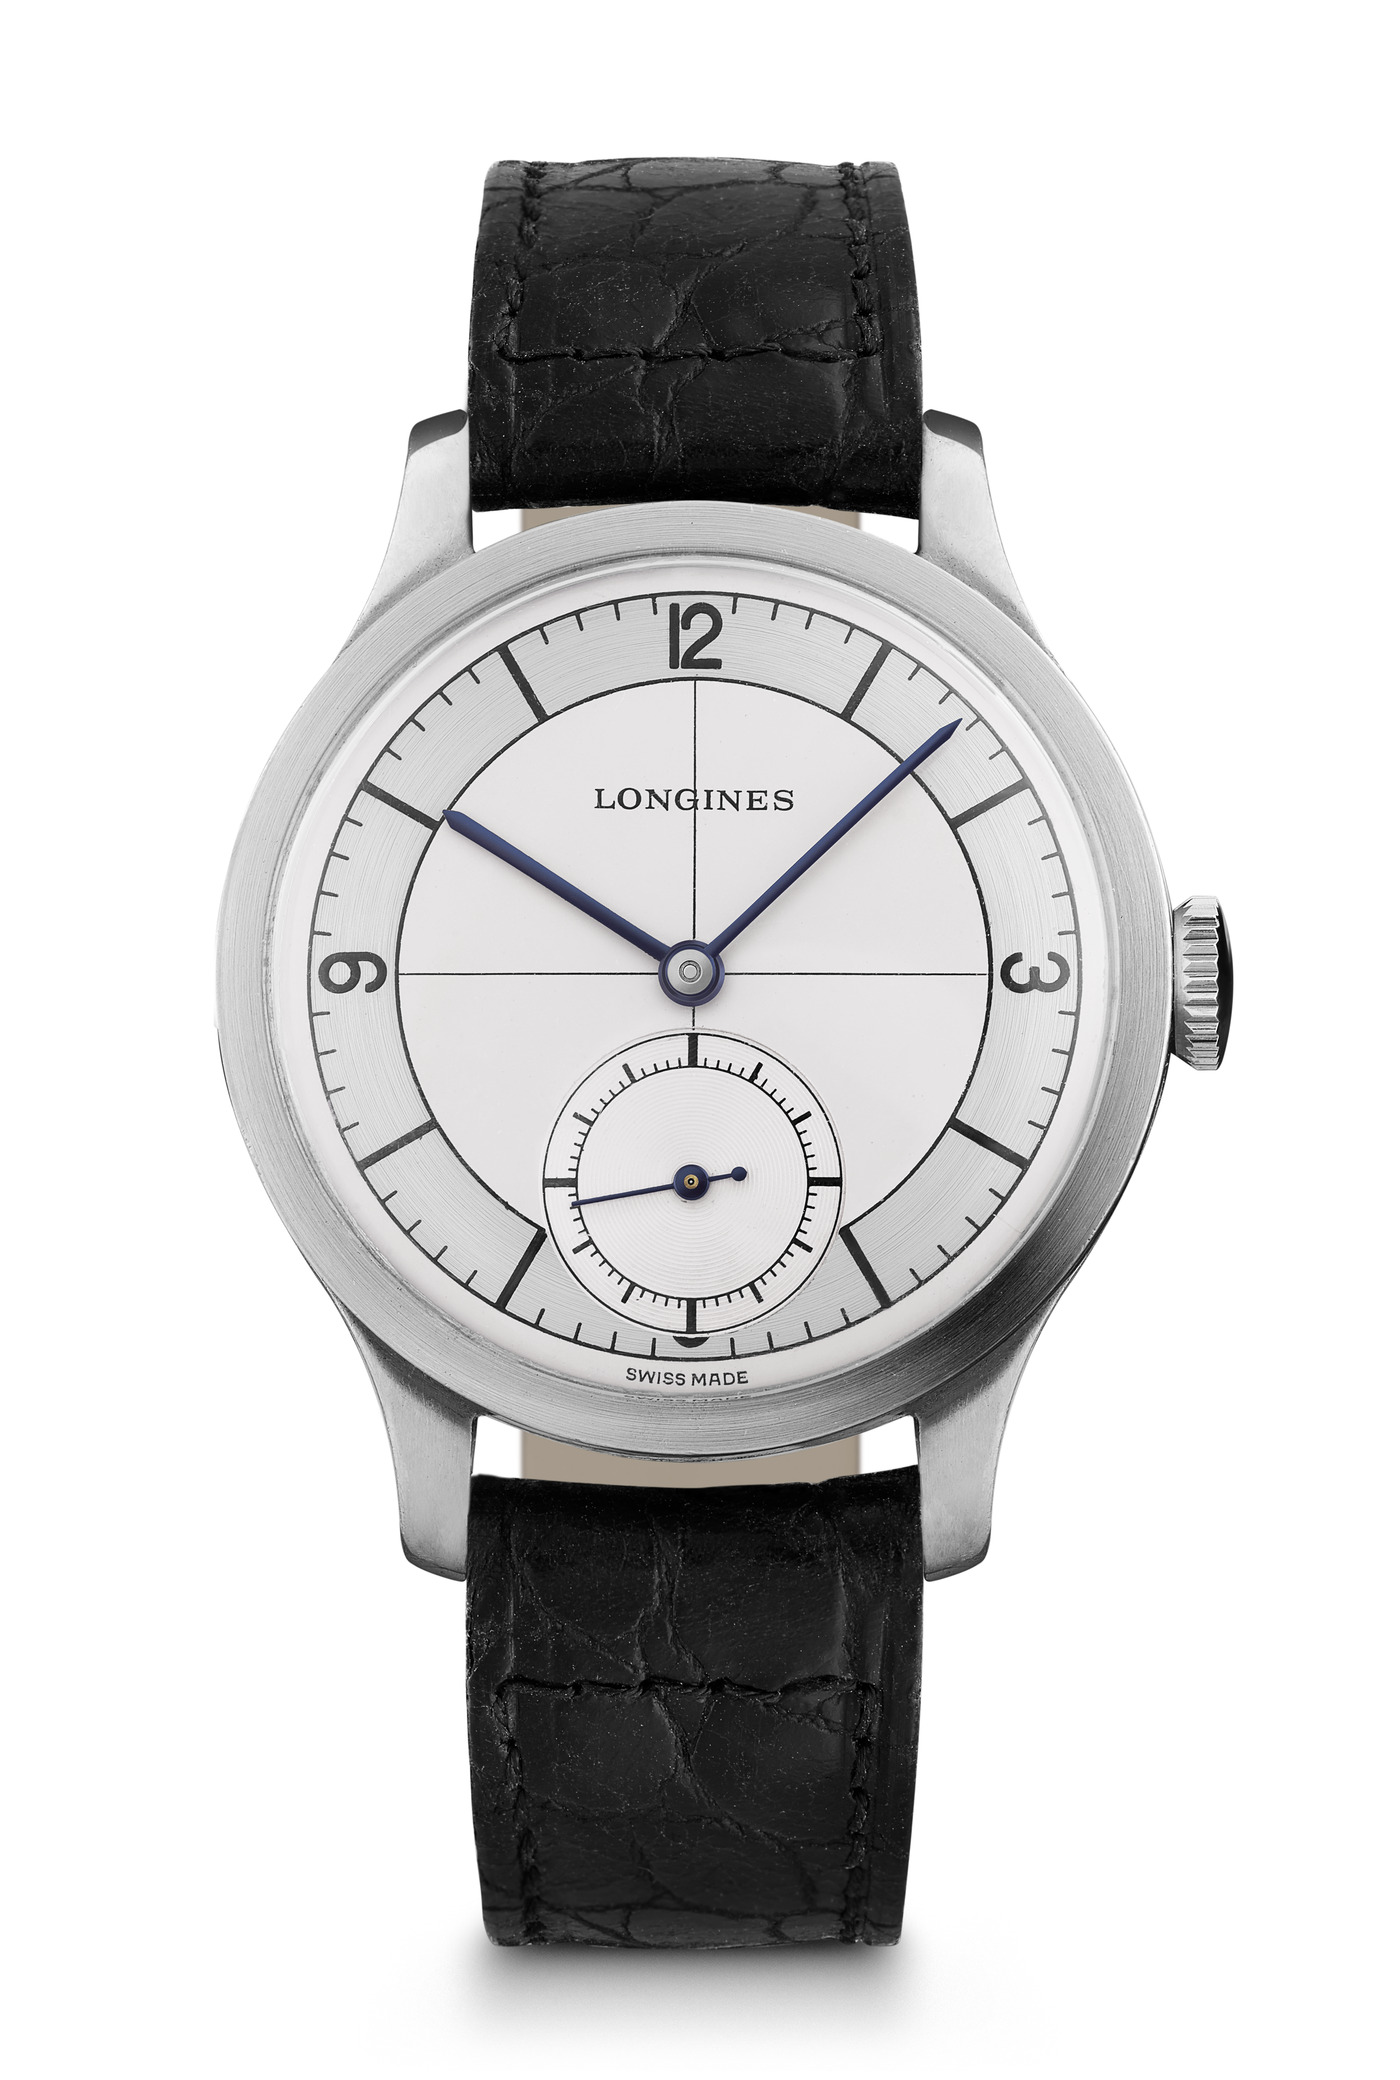 Longines The Longines Heritage Classic Watch 4